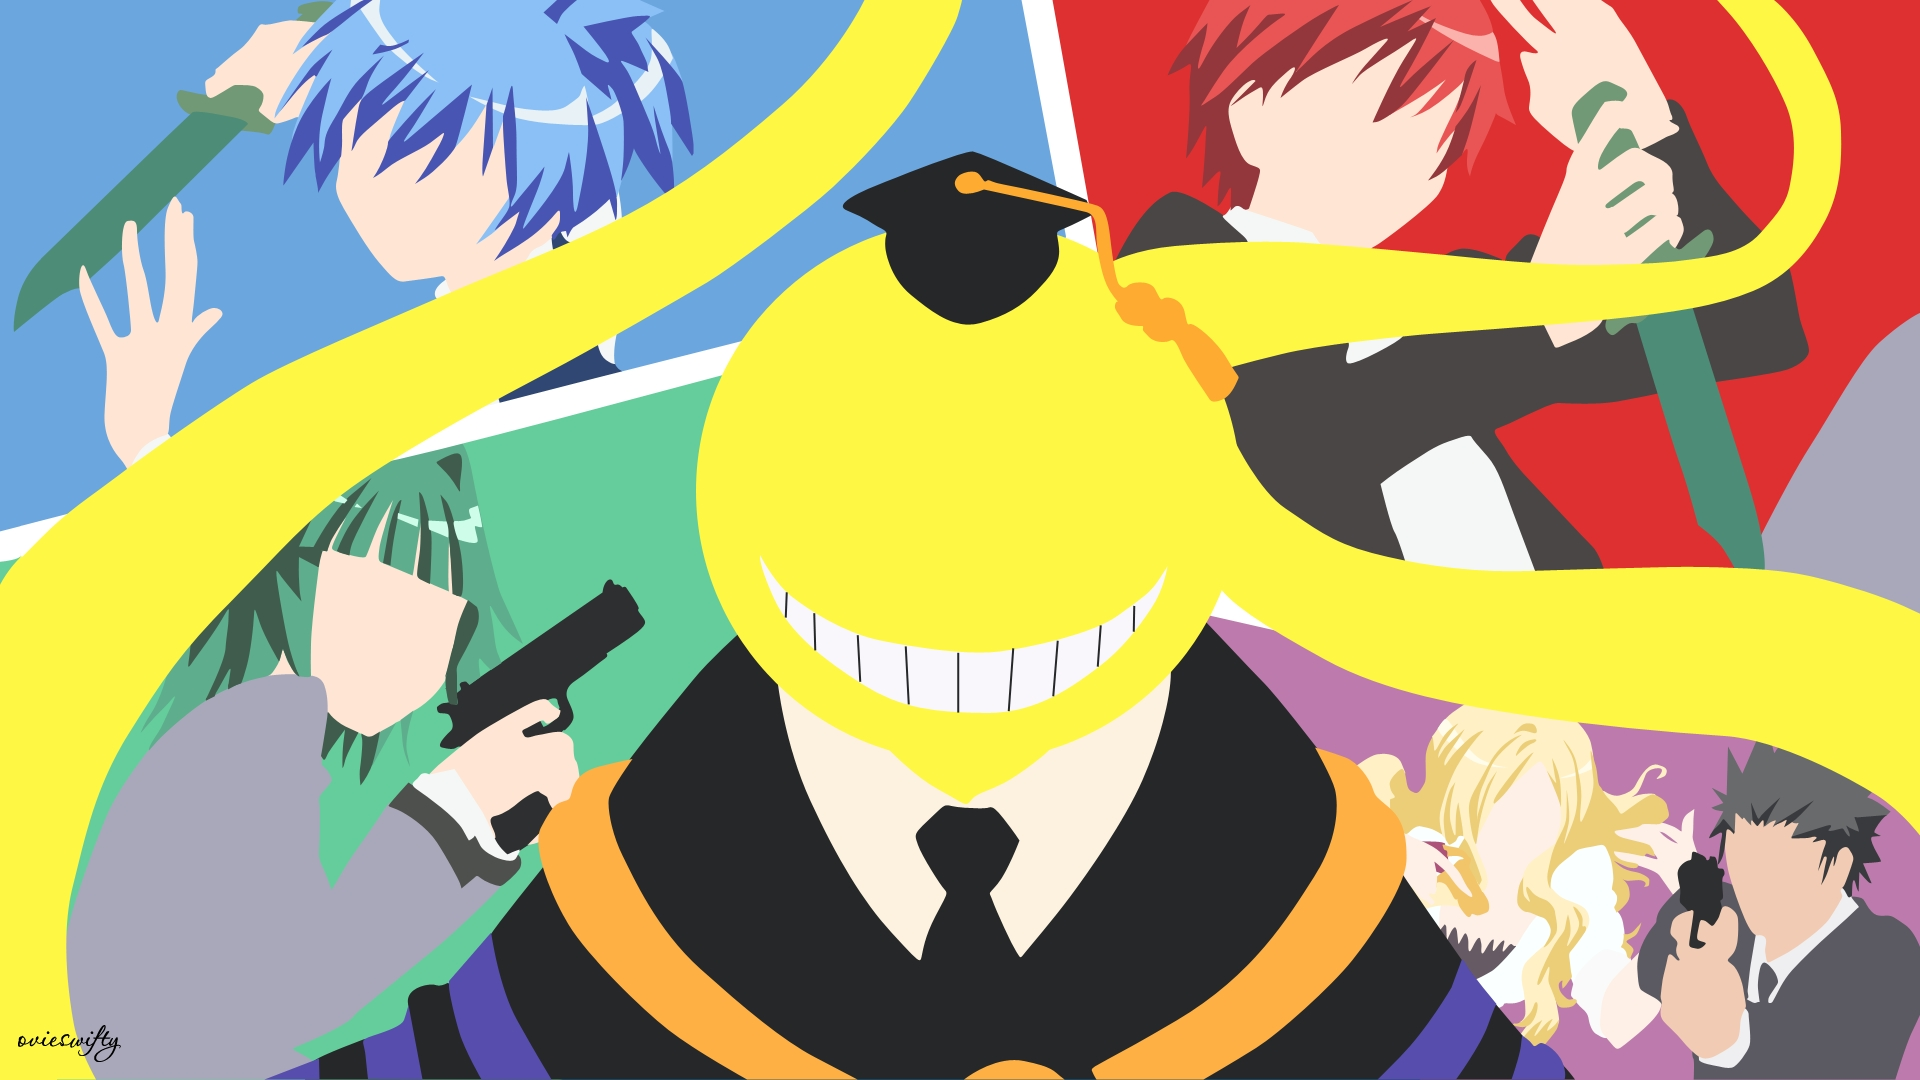 assassination classroom images assassination classroom. hd wallpaper